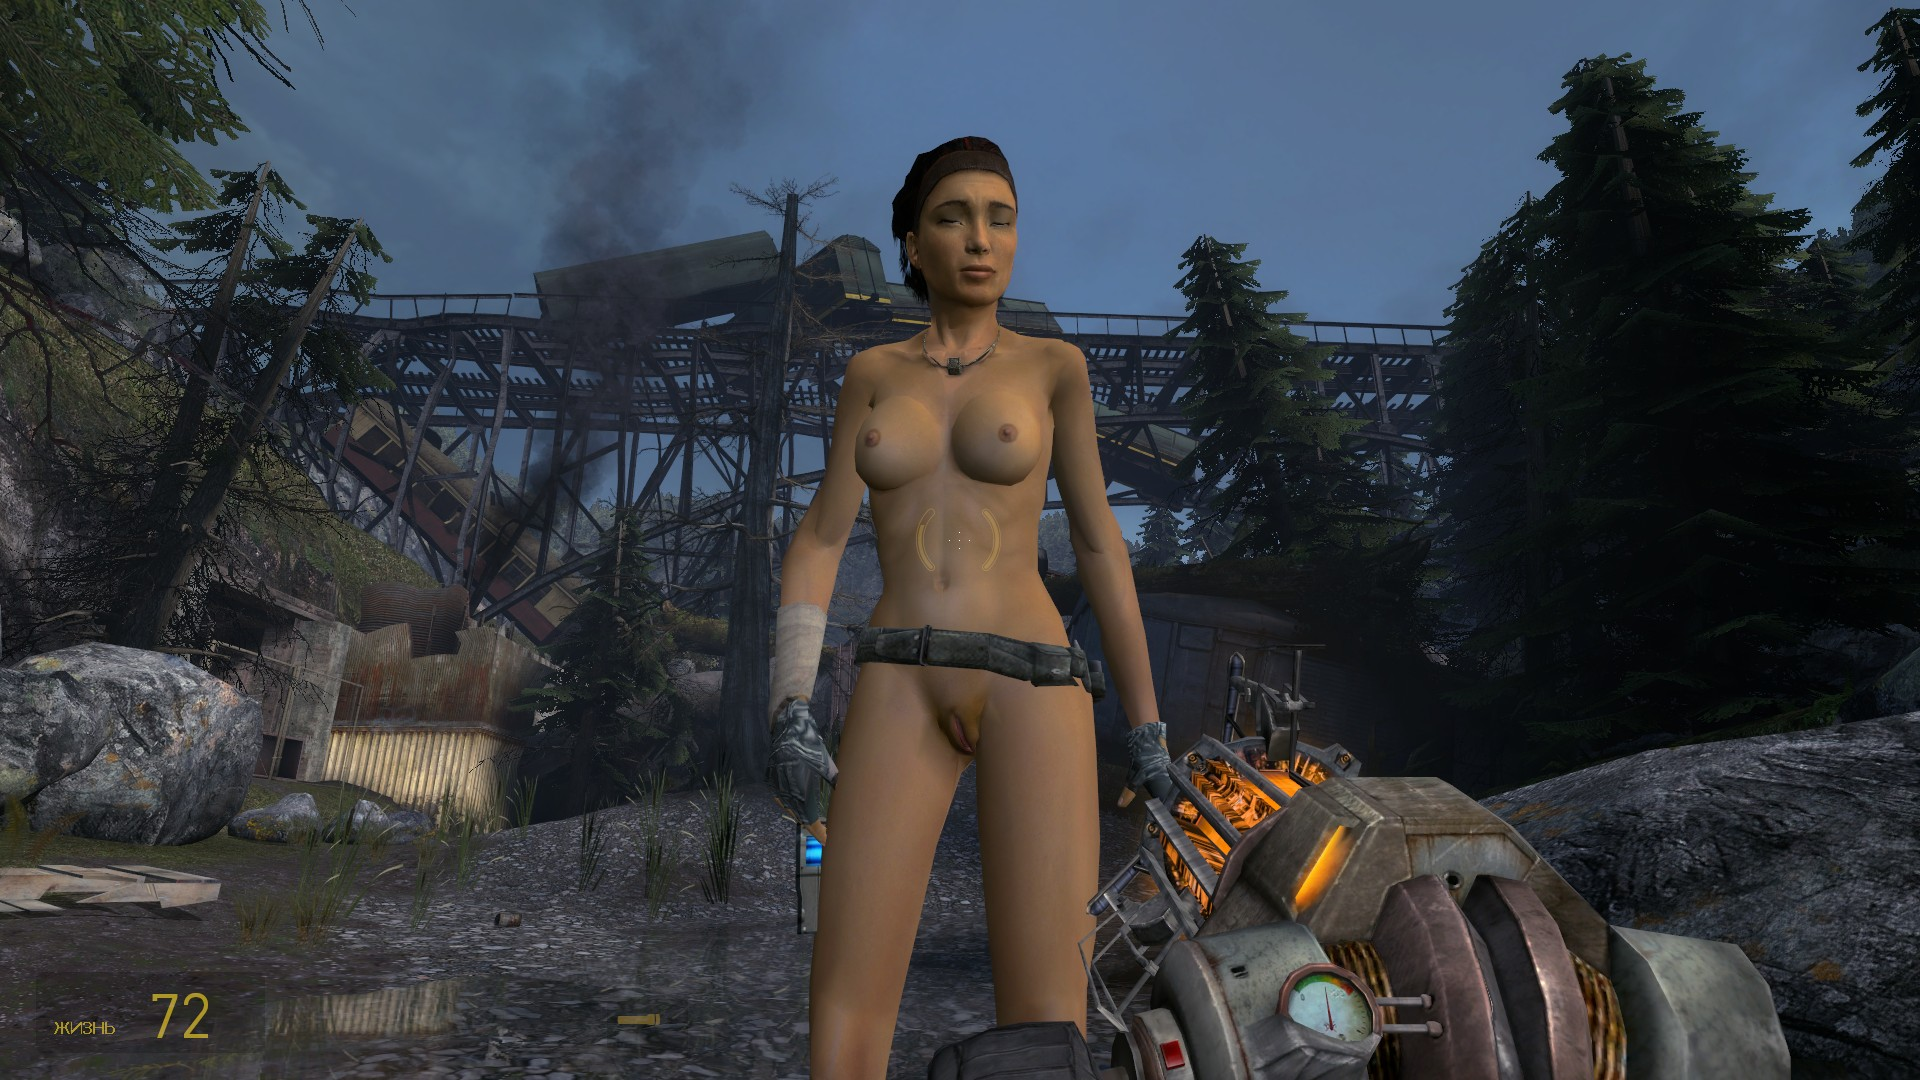 Half-life alex nude porncraft picture